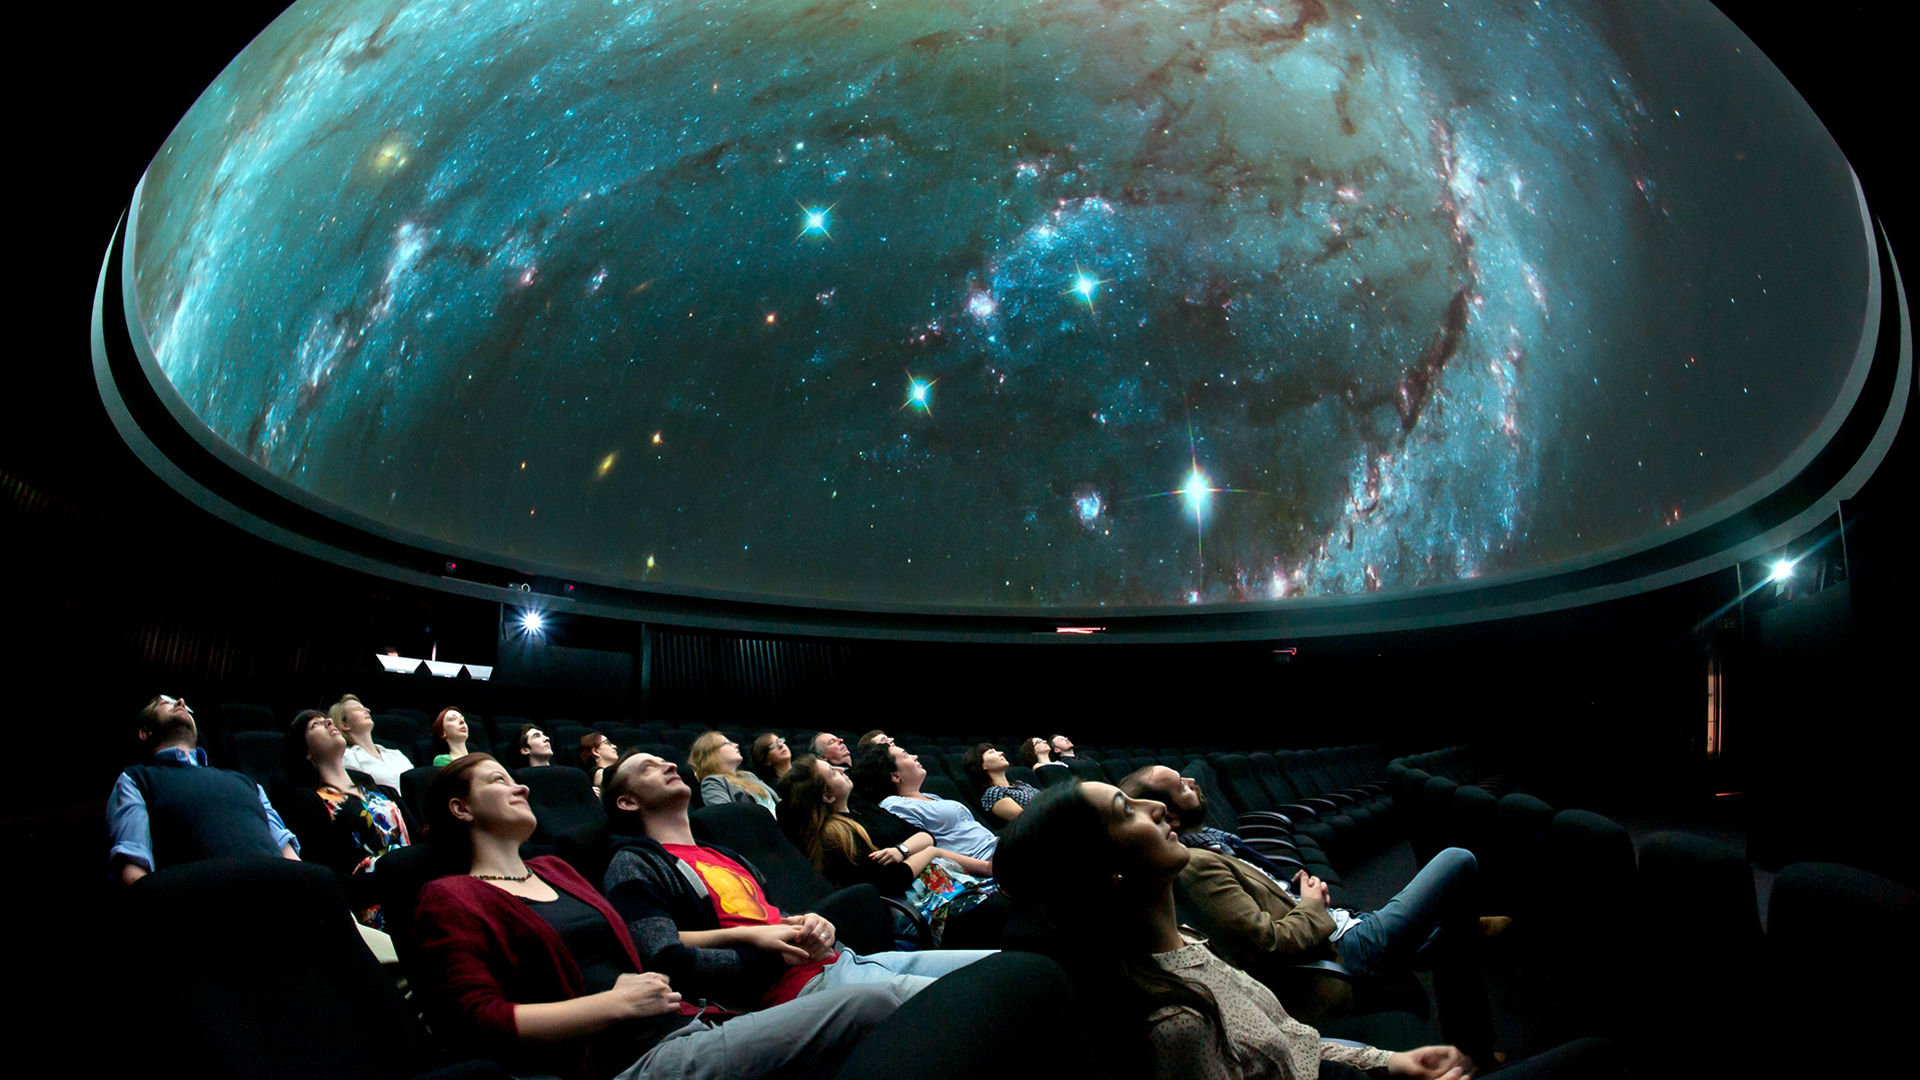 The International Day of Planetariums 2021